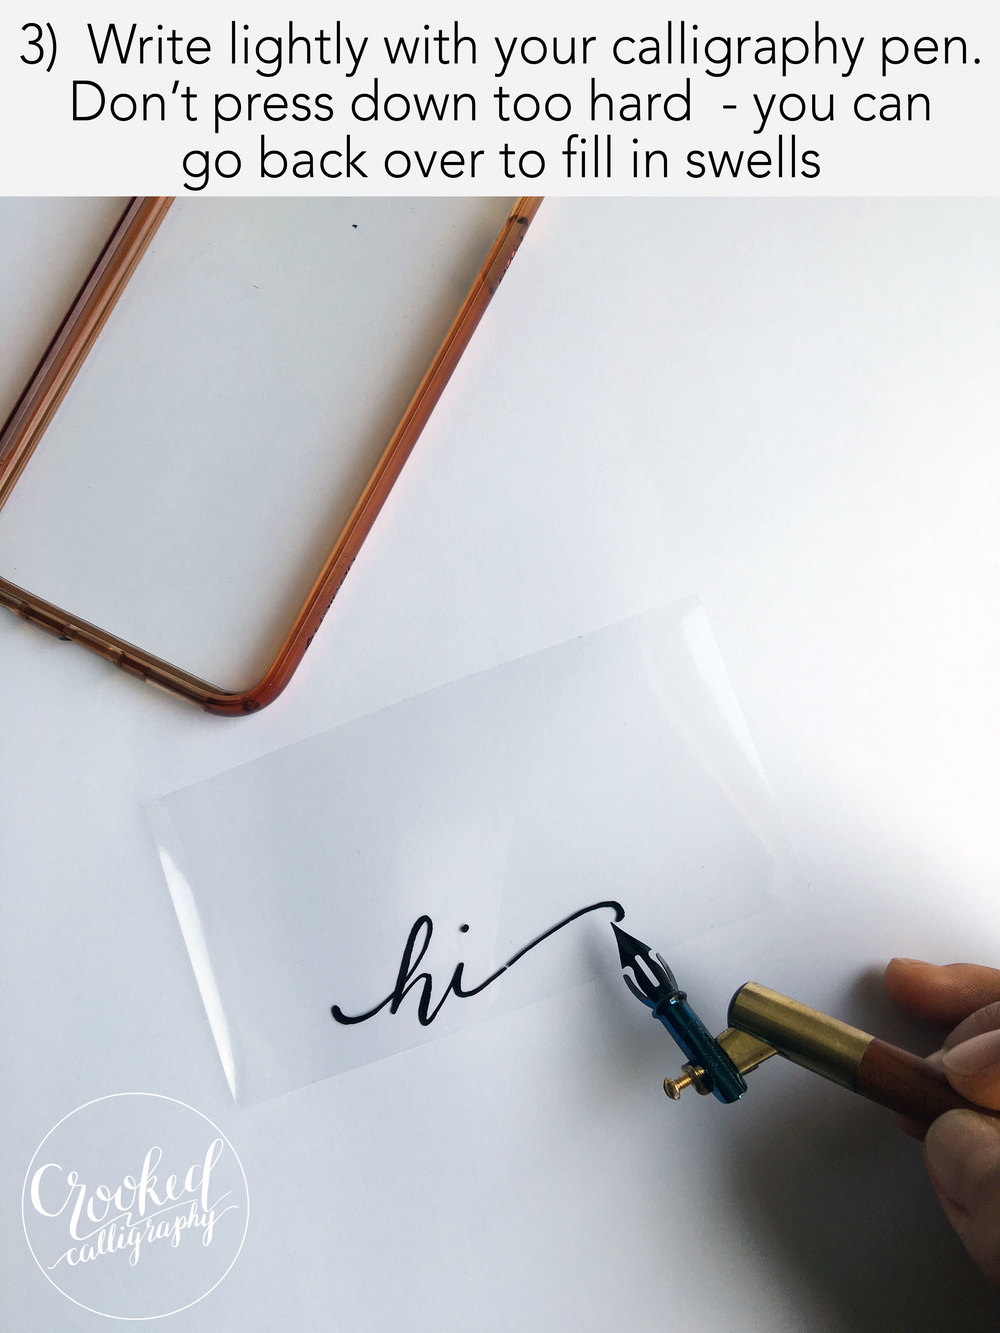 Diy calligraphy phone case — crooked